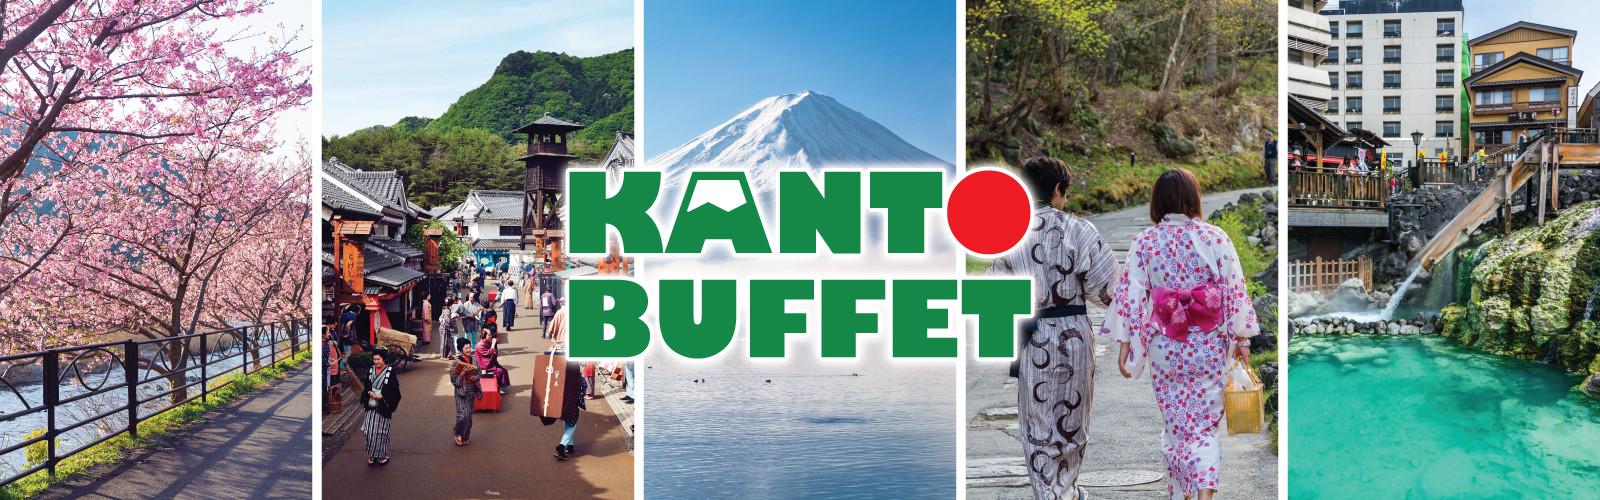 170203----FIT-Product----Banner-Kanto-Buffet